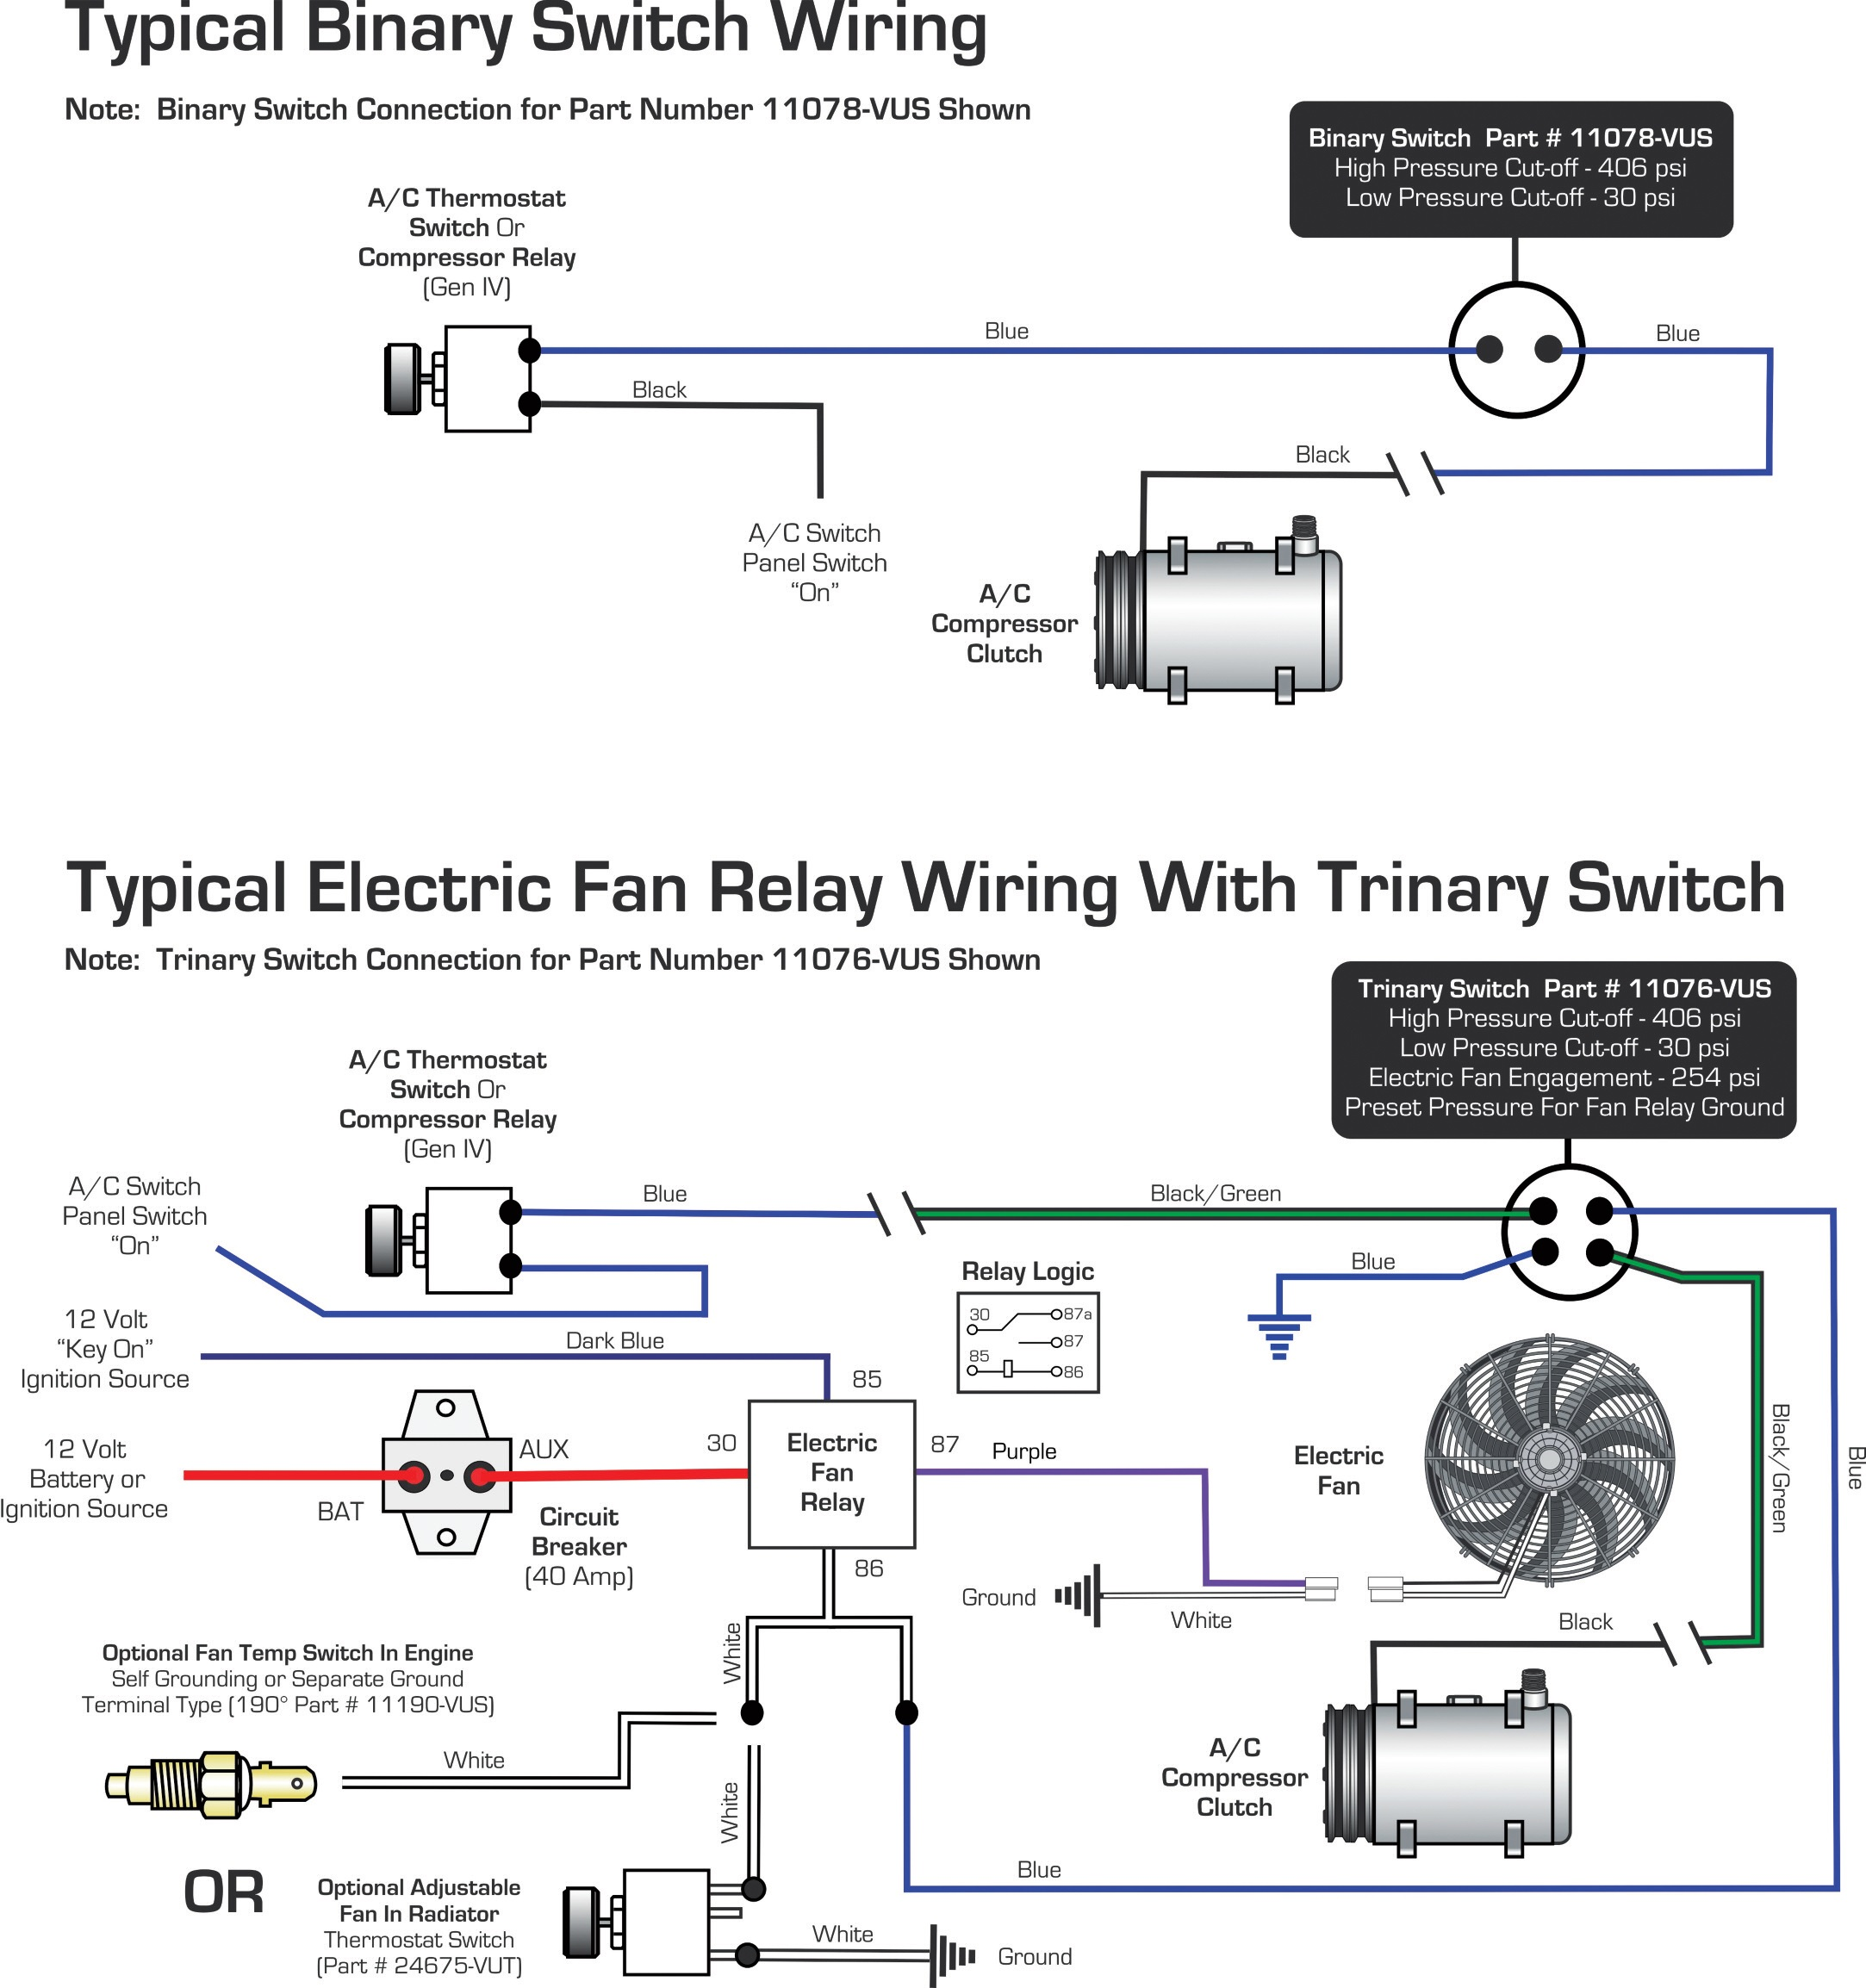 4 sd fan wiring diagrams vintage air blog archive    wiring       diagrams    binary switch  vintage air blog archive    wiring       diagrams    binary switch